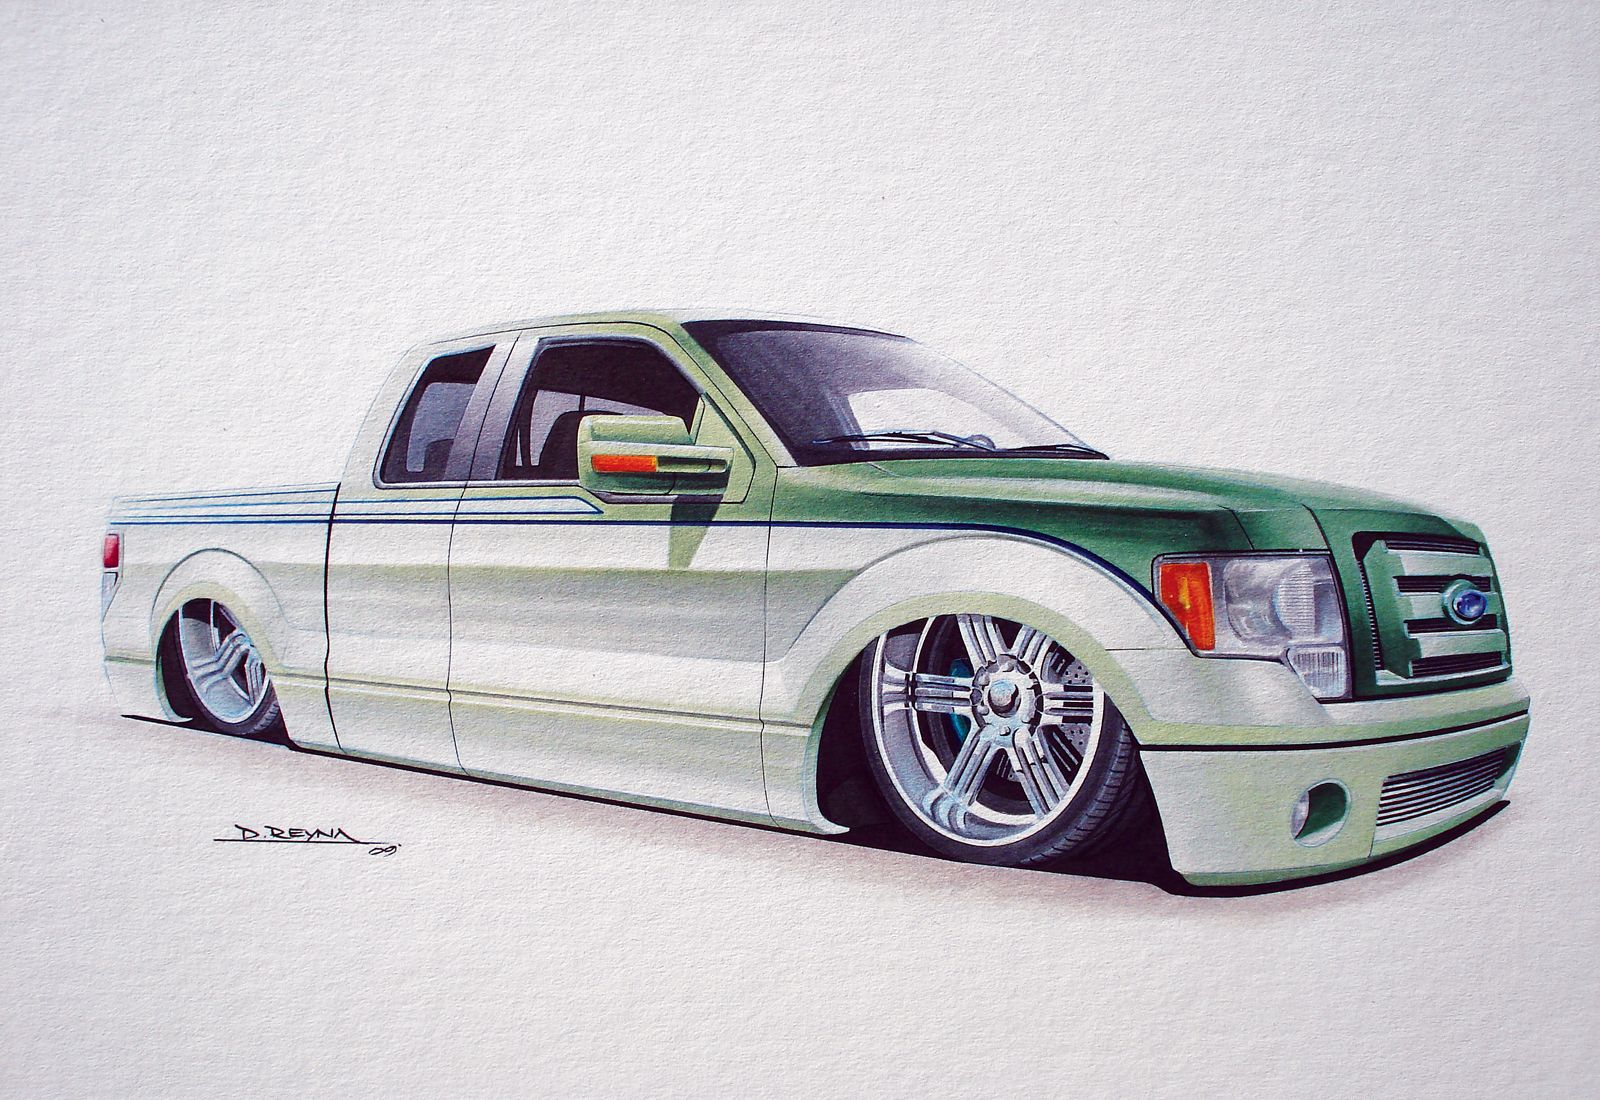 Gmc Drawing At Free For Personal Use 2003 Truck Parts Breakdown 1600x1100 I Have Been Workin On Past Few Days